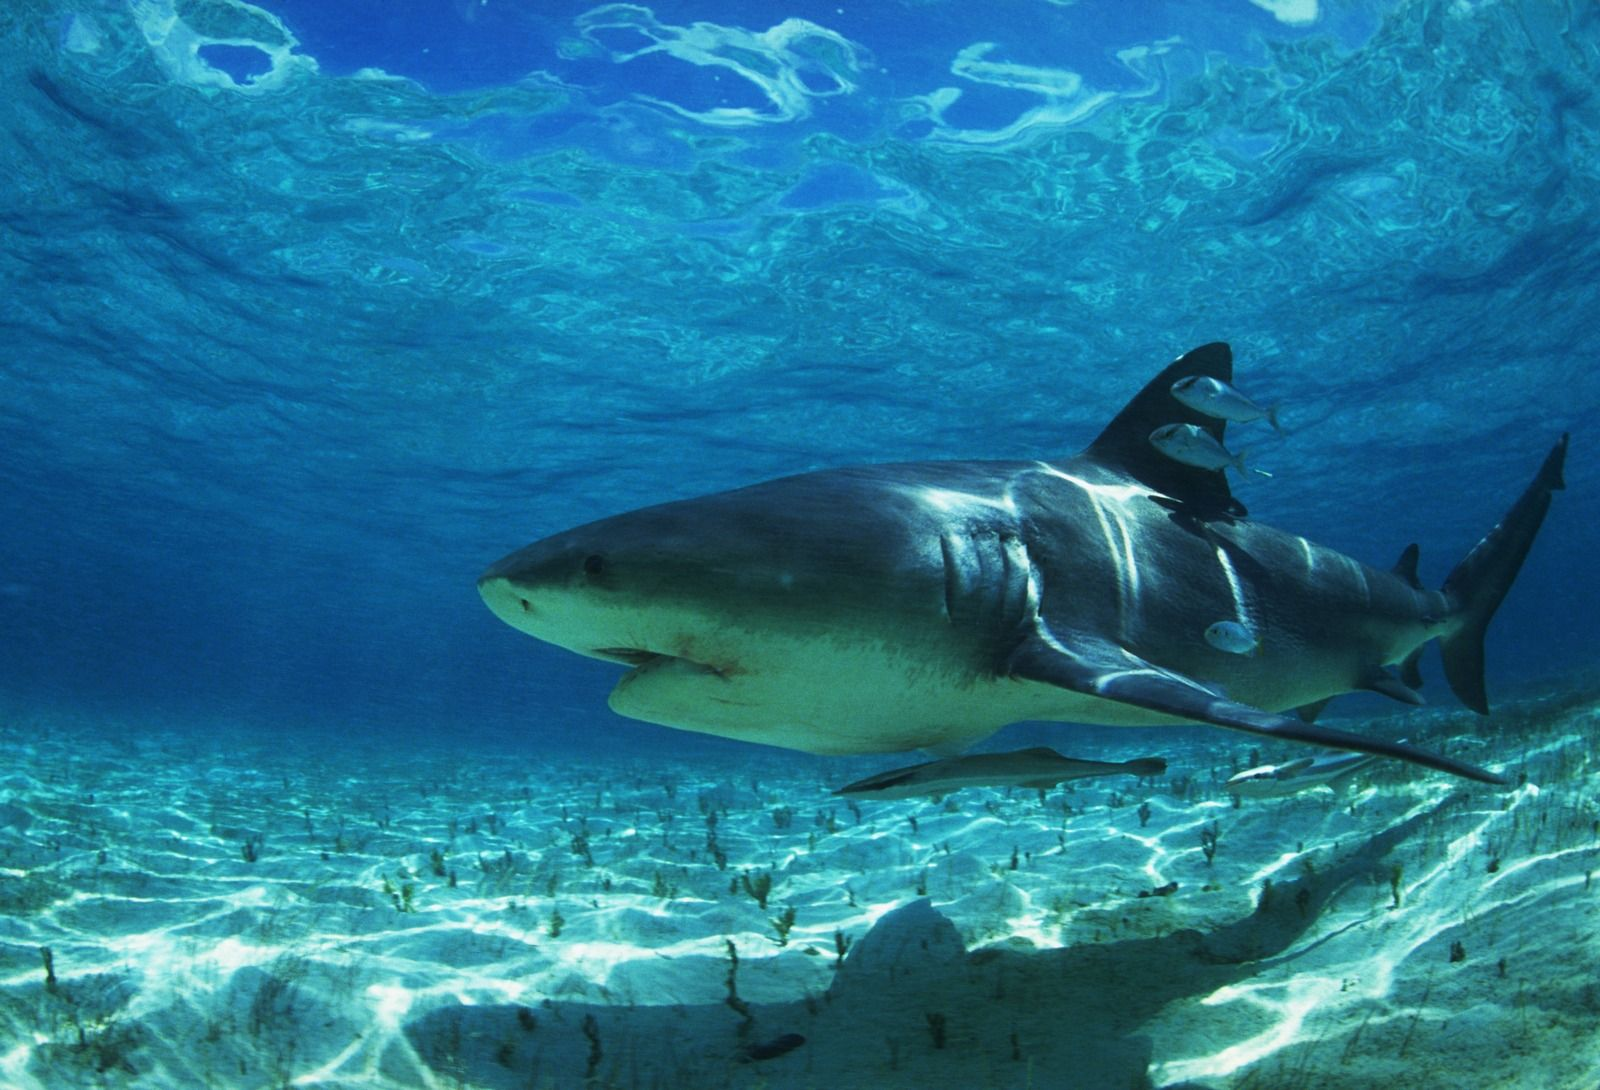 shark pics in high resolution | best sharks and killer whales